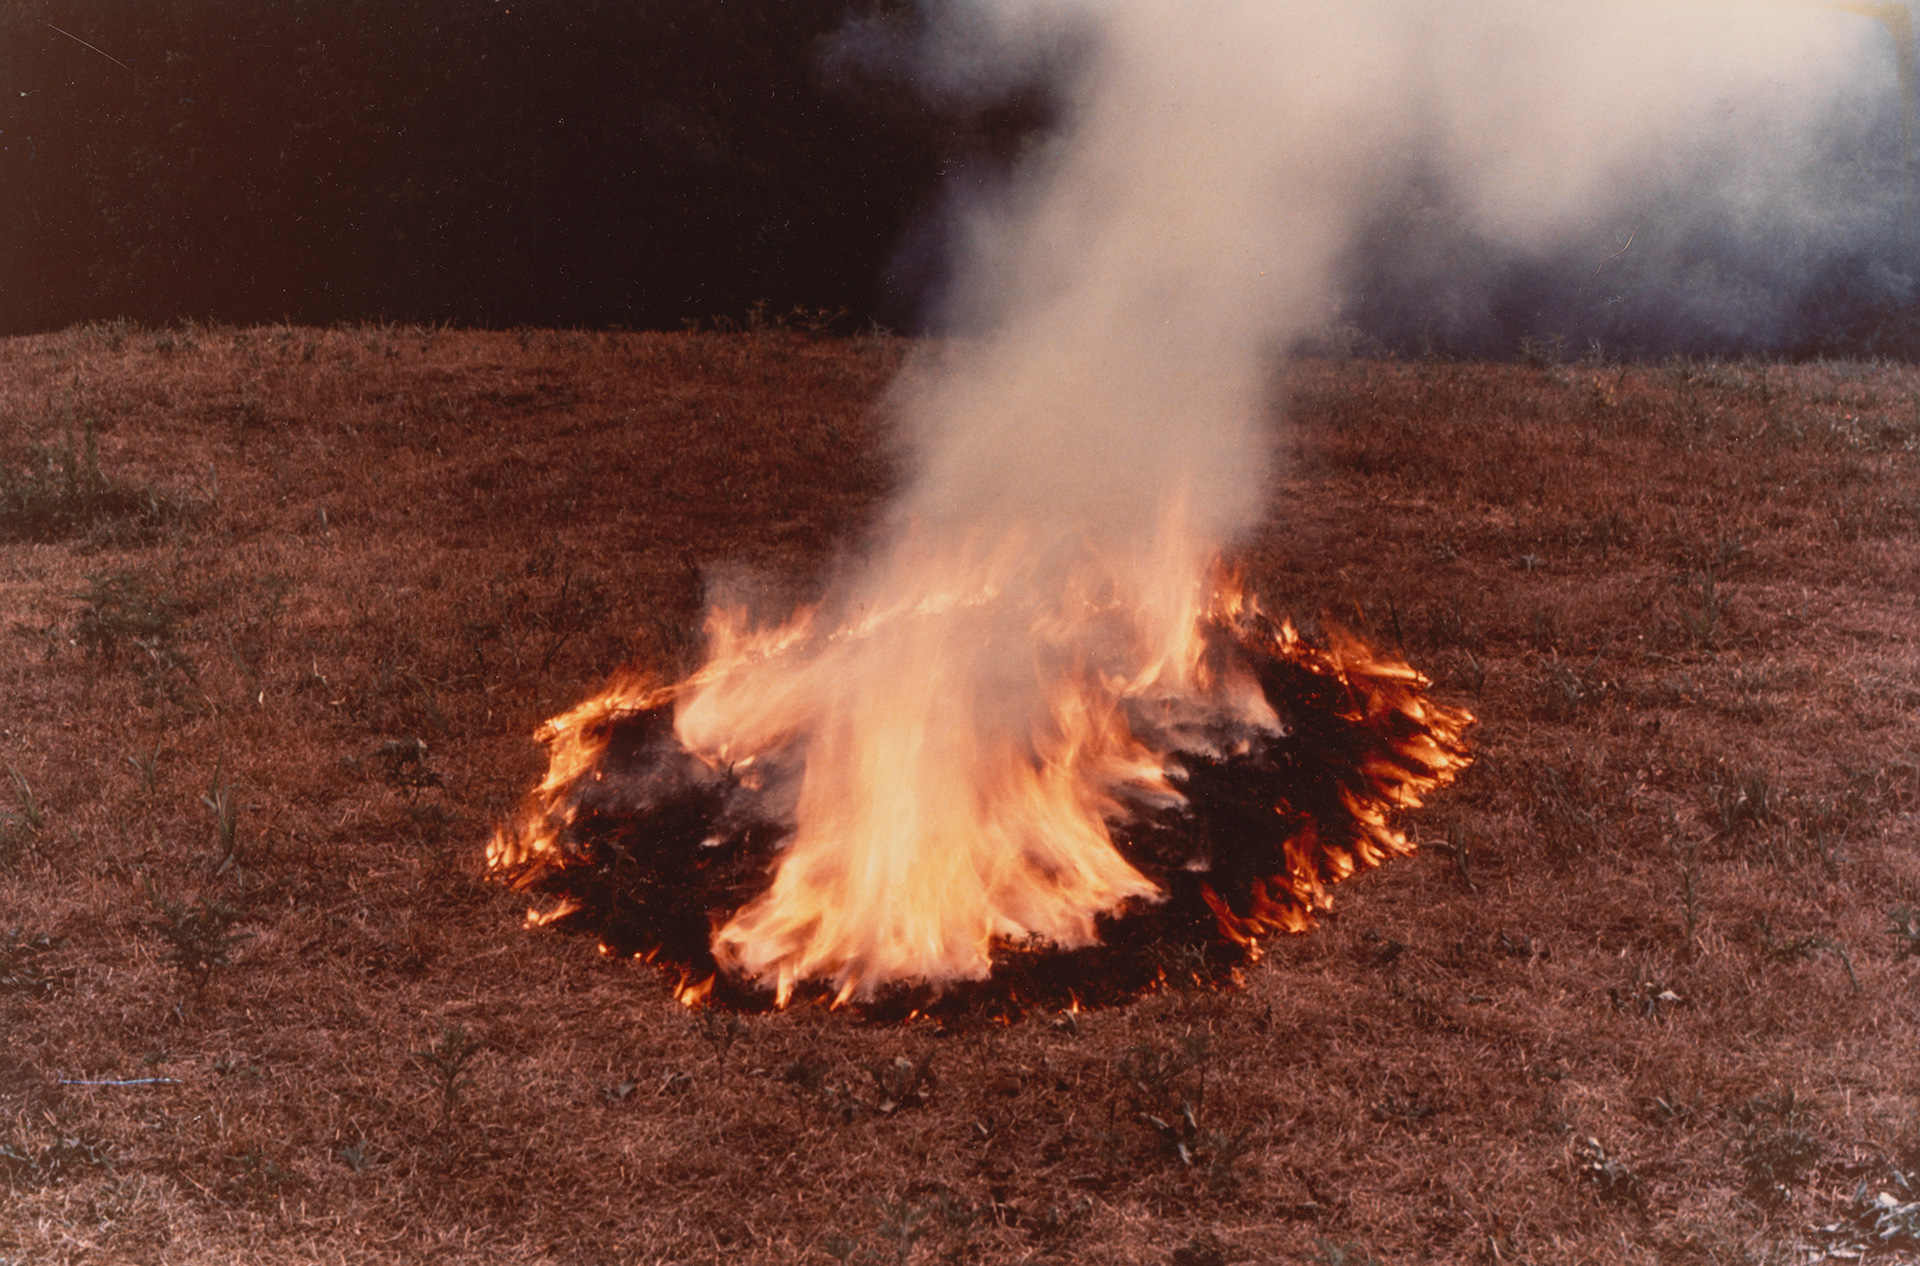 Ana Mendieta, Three Ring Silueta, 1977, colour photograph 13 x 20 inches (33 x 50.8 cm) (GL10794); copyright The Estate of Ana Mendieta Collection, LLC.| Earthbound | Ana Mendieta | STIR